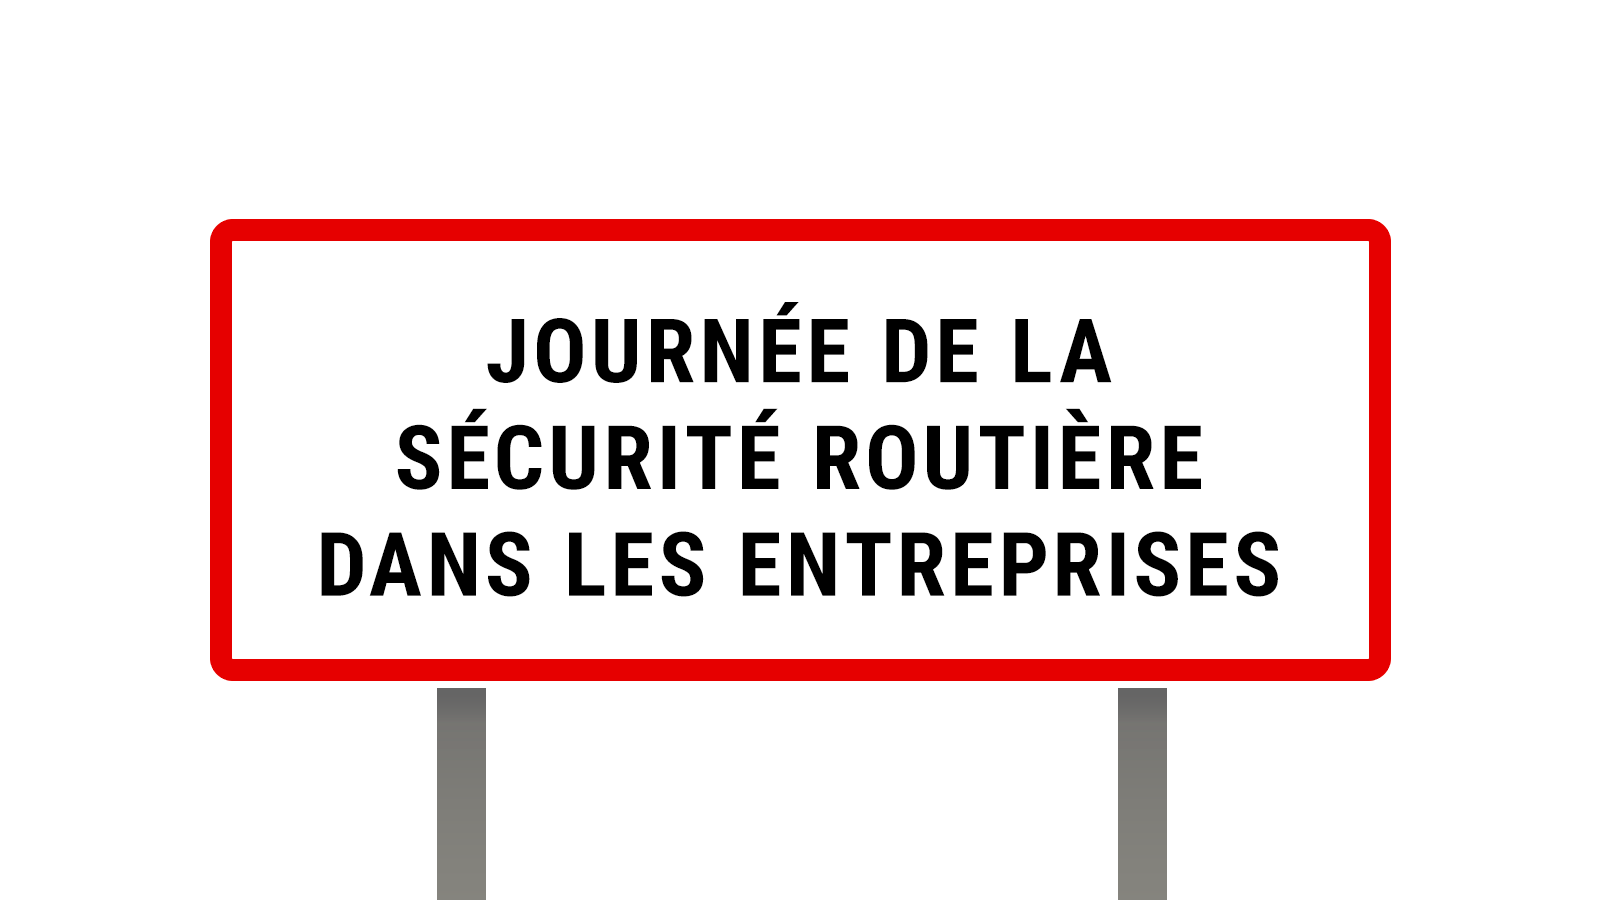 journee-securite-routiere